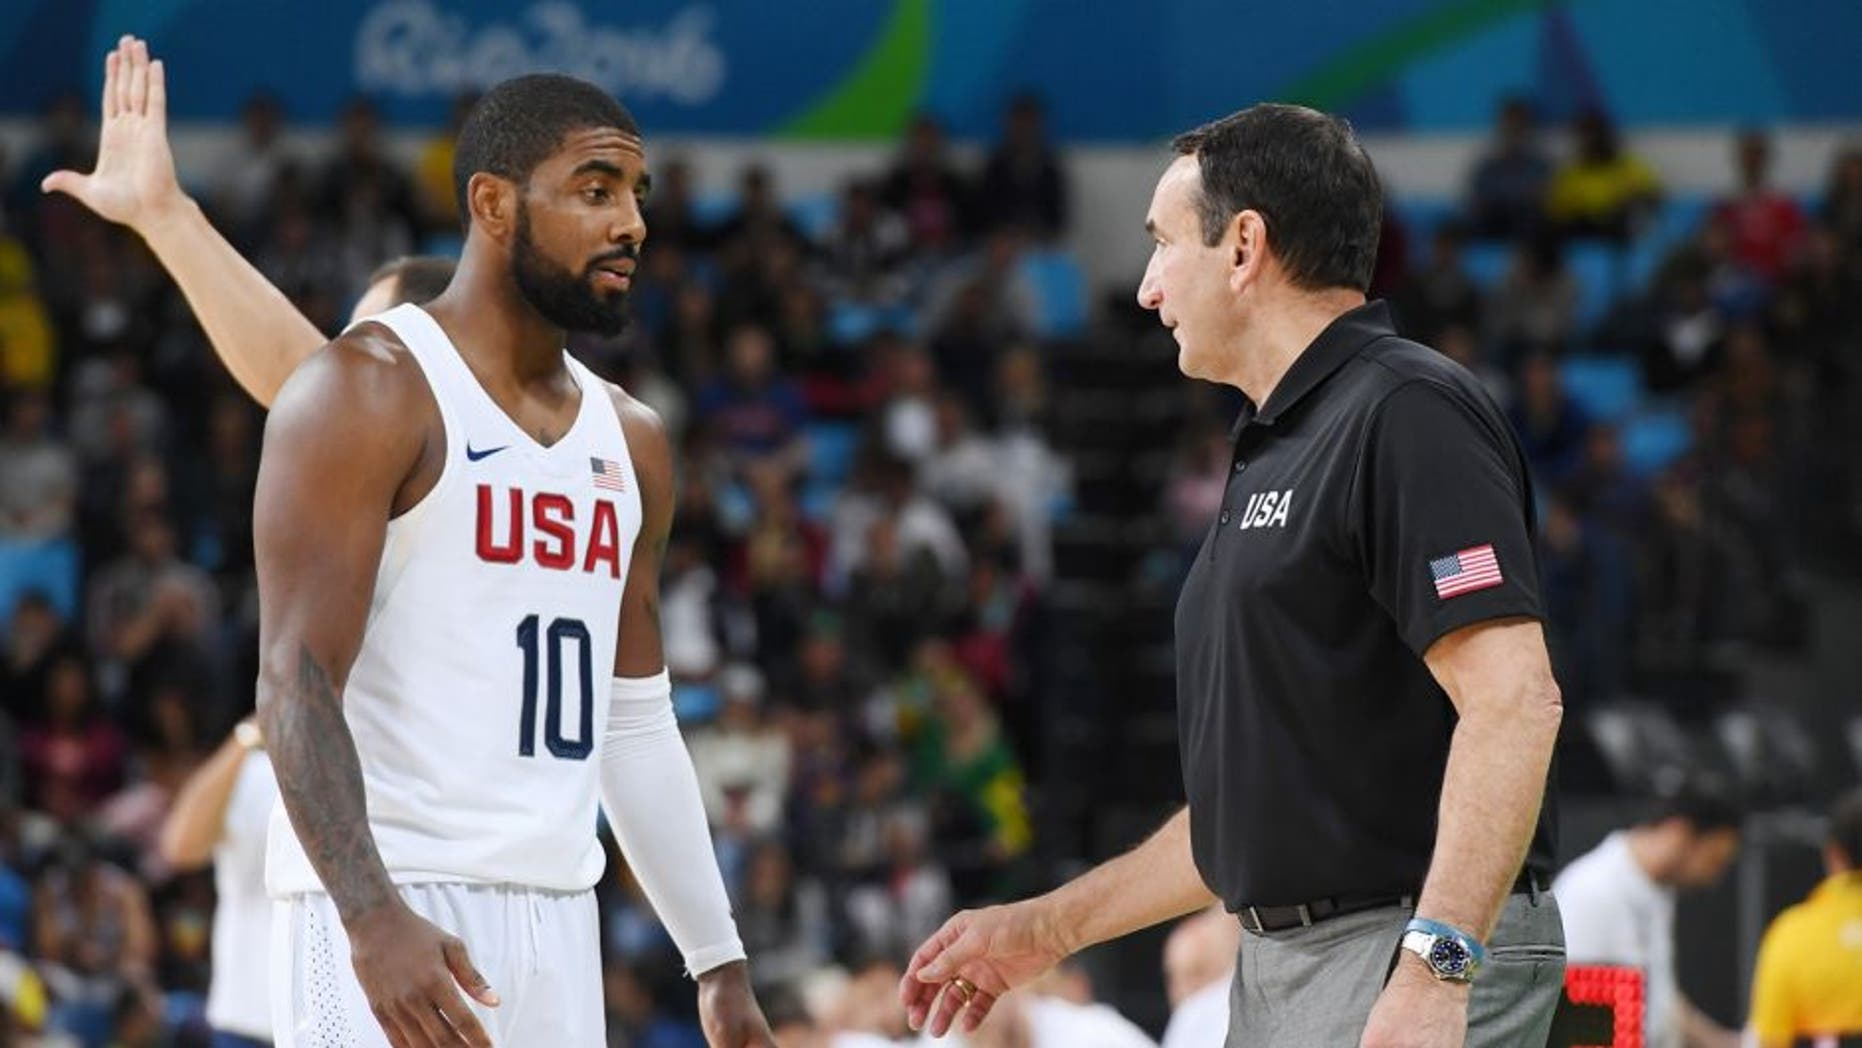 RIO DE JANEIRO, BRAZIL - AUGUST 12: Kyrie Irving #10 and head coach Mike Krzyzewski of the USA Basketball Men's National Team talk during the game against Serbia on Day 7 of the Rio 2016 Olympic Games at Carioca Arena 1 on August 12, 2016 in Rio de Janeiro, Brazil. NOTE TO USER: User expressly acknowledges and agrees that, by downloading and/or using this Photograph, user is consenting to the terms and conditions of the Getty Images License Agreement. Mandatory Copyright Notice: Copyright 2016 NBAE (Photo by Garrett Ellwood/NBAE via Getty Images)